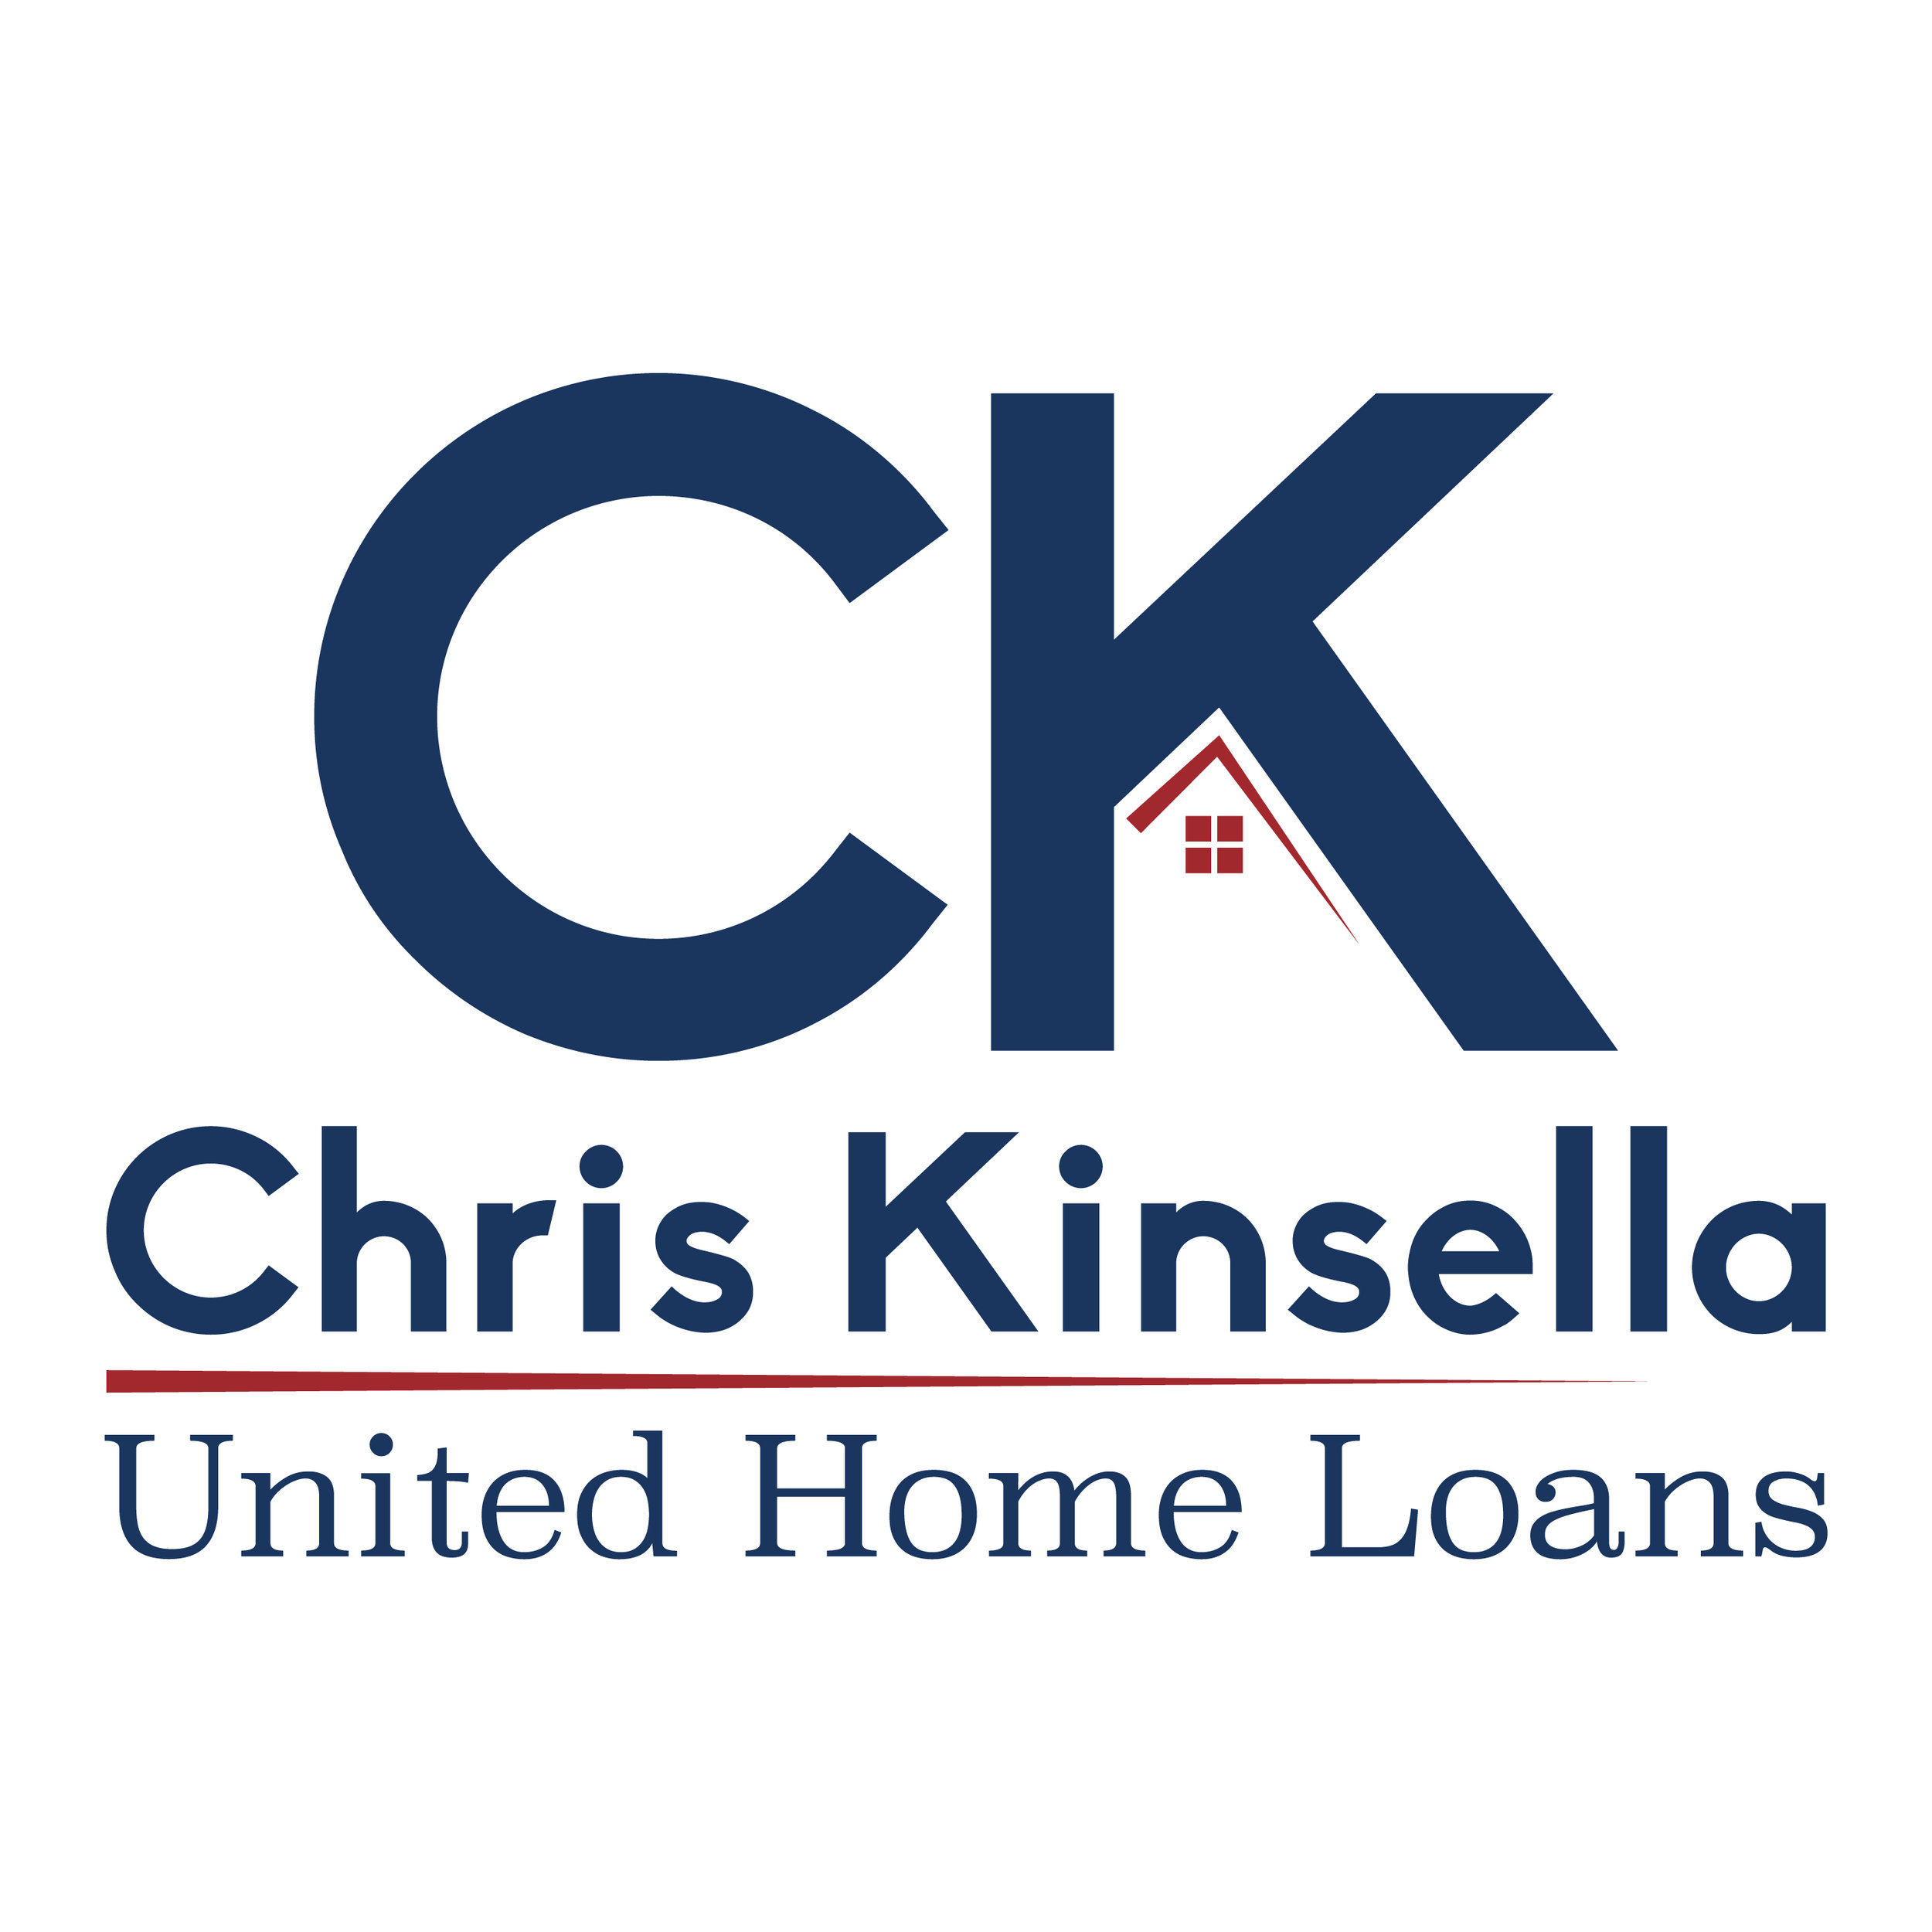 Personal idenity design for Chris Kinsella, Senior Mortgage Banker at United Home Loans. Logo features initals along with a simple home shape.